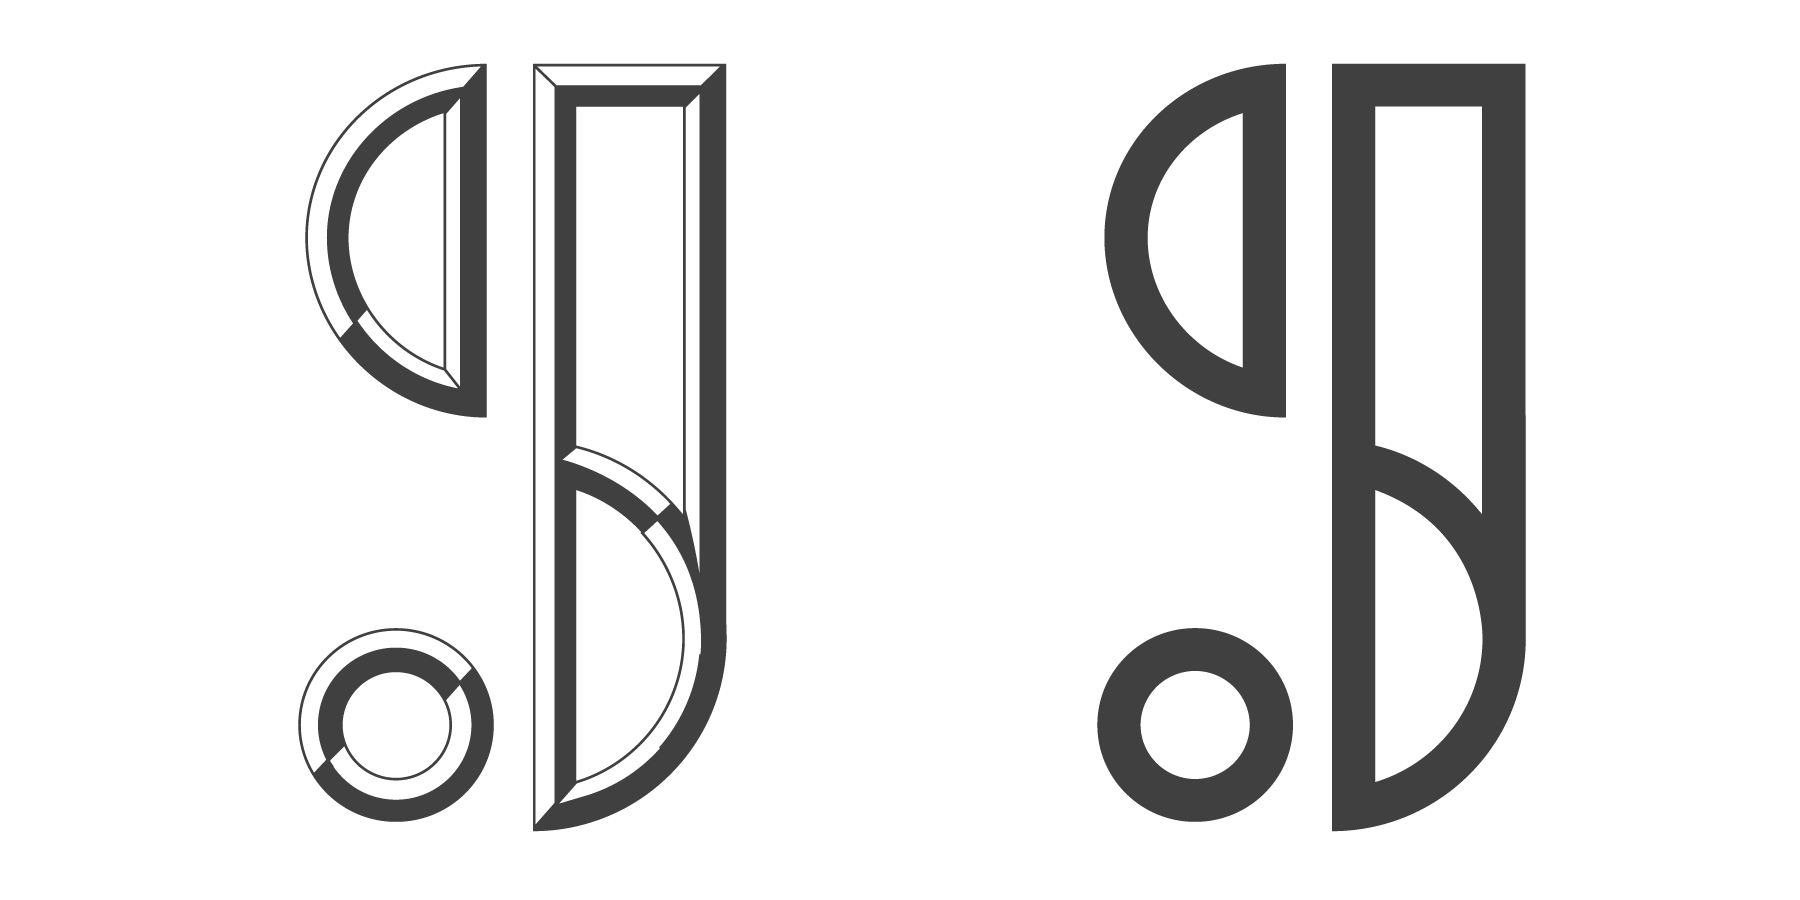 DCL_S&J_MONOGRAM_2x1_003.png